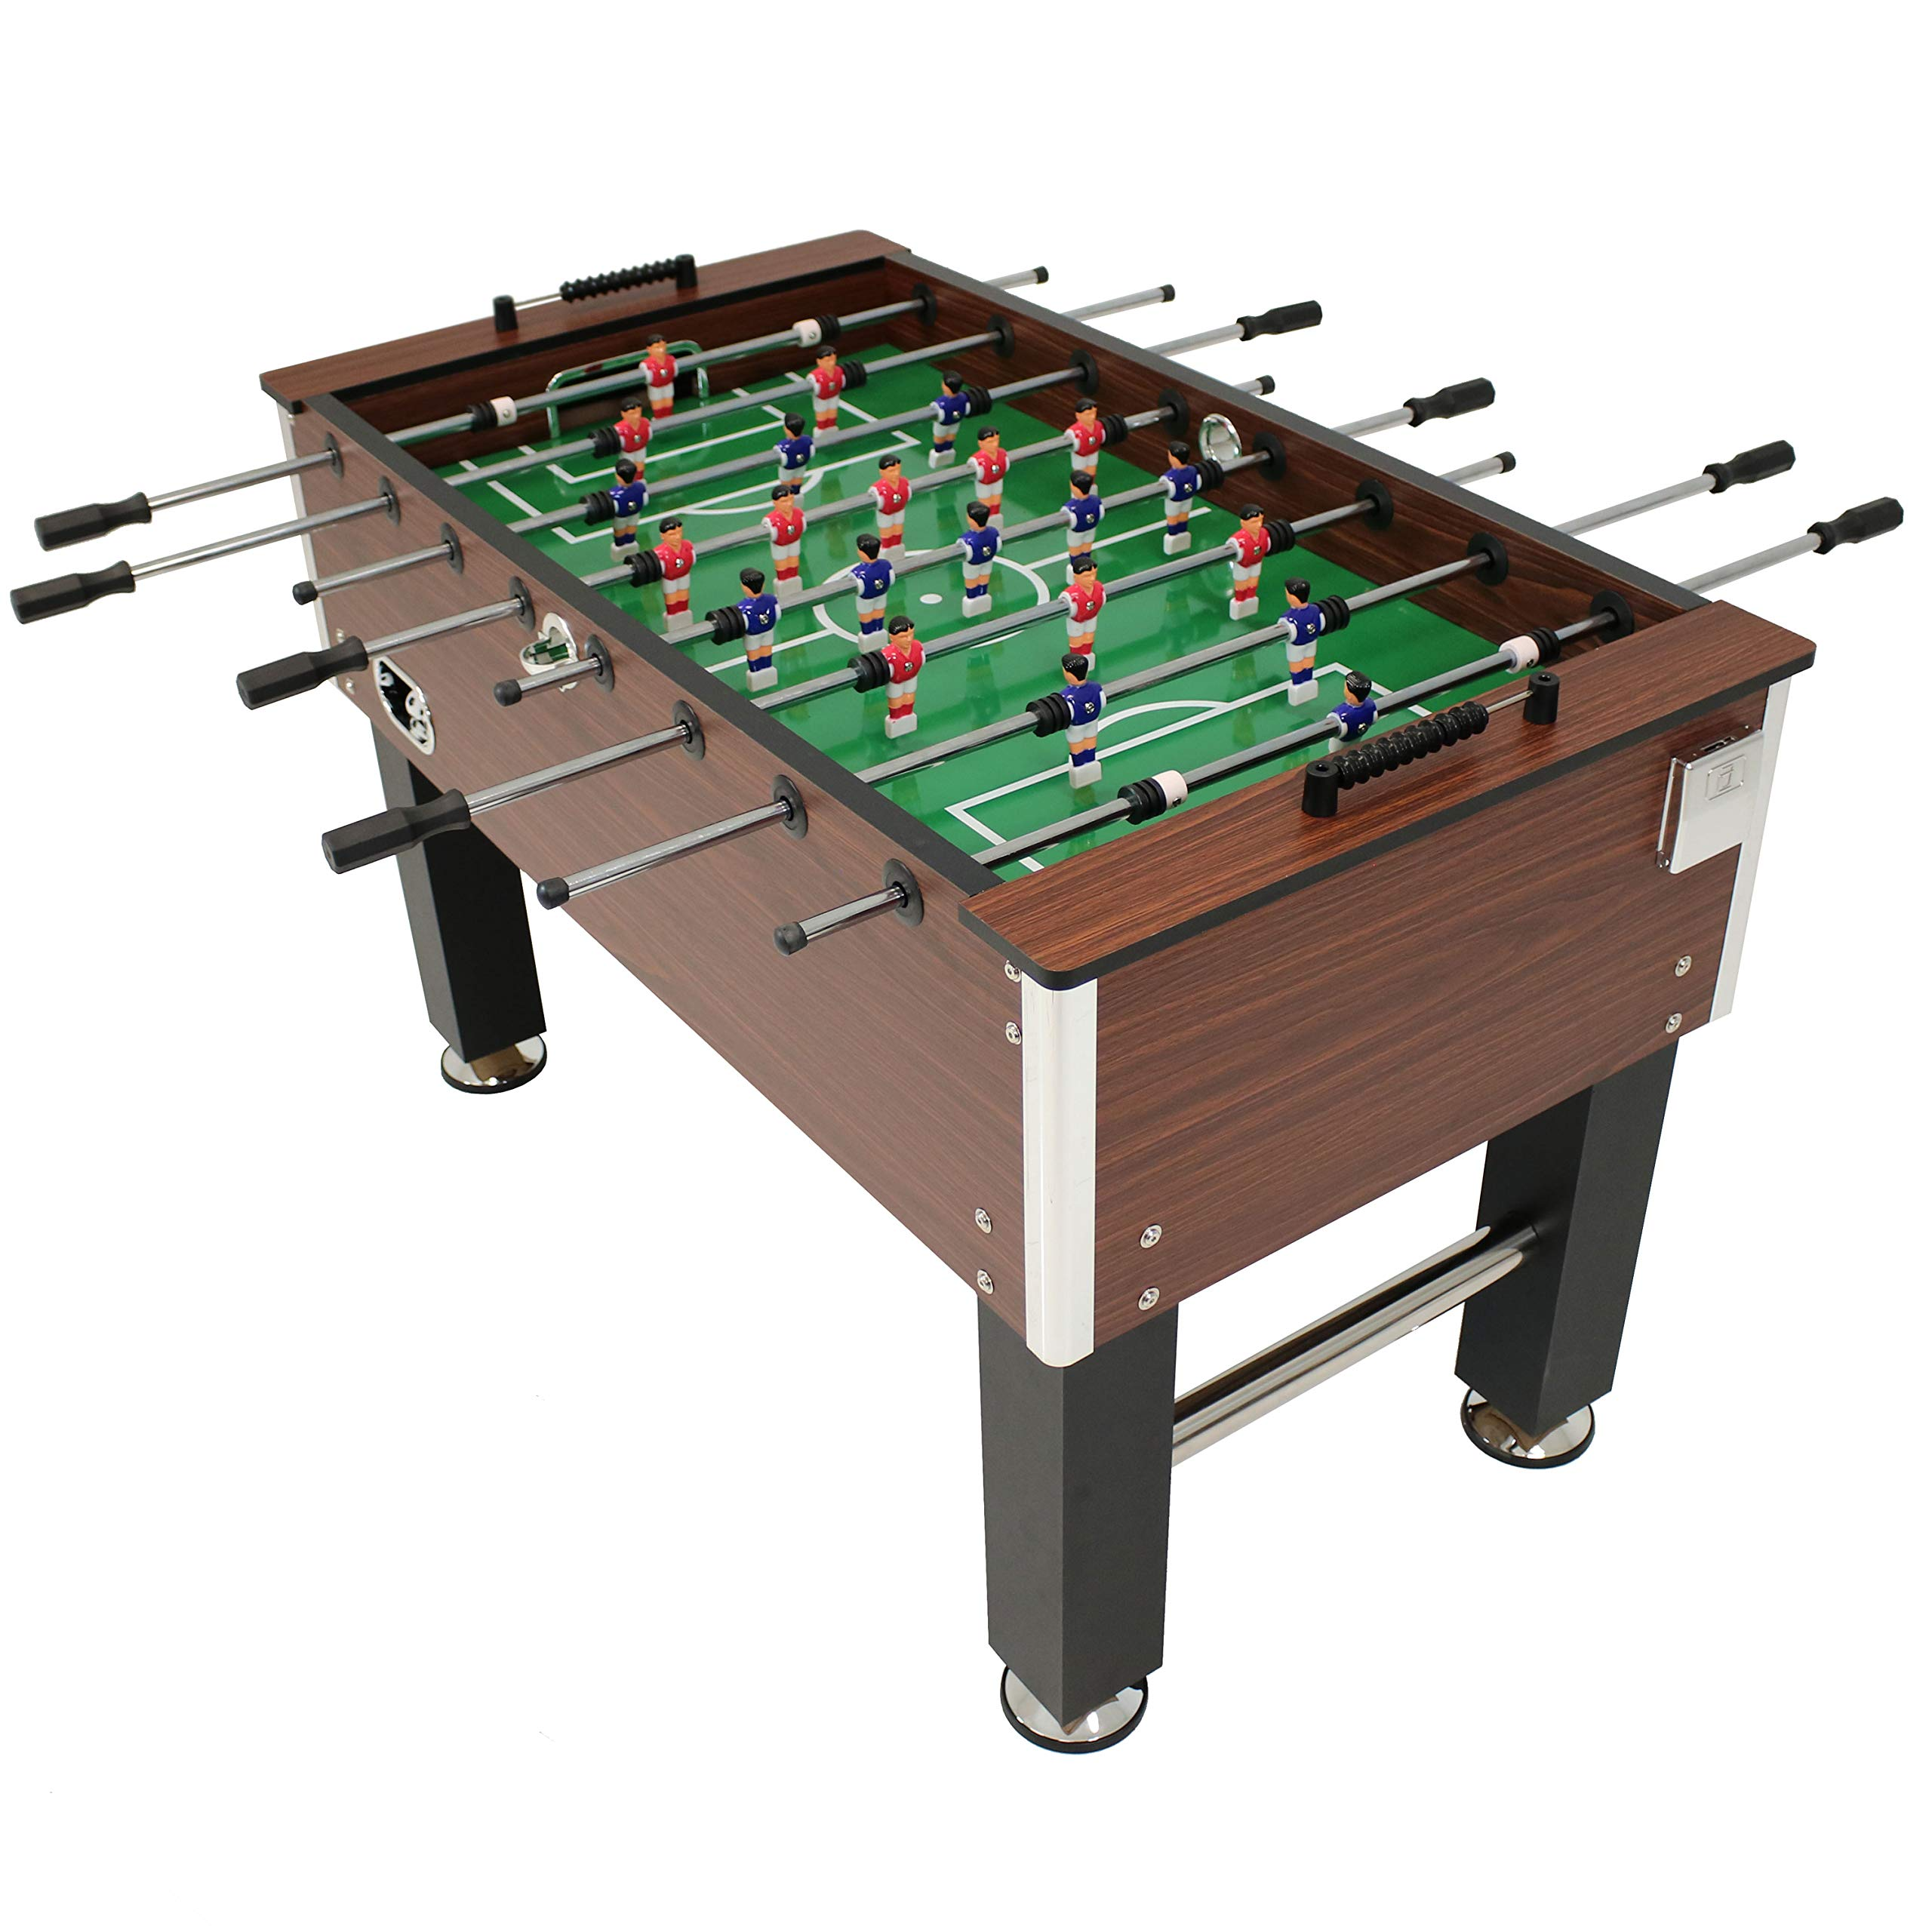 Sunnydaze 55-Inch Faux Wood Foosball Table with Folding Drink Holders, Sports Arcade Soccer for Game Room by Sunnydaze Decor